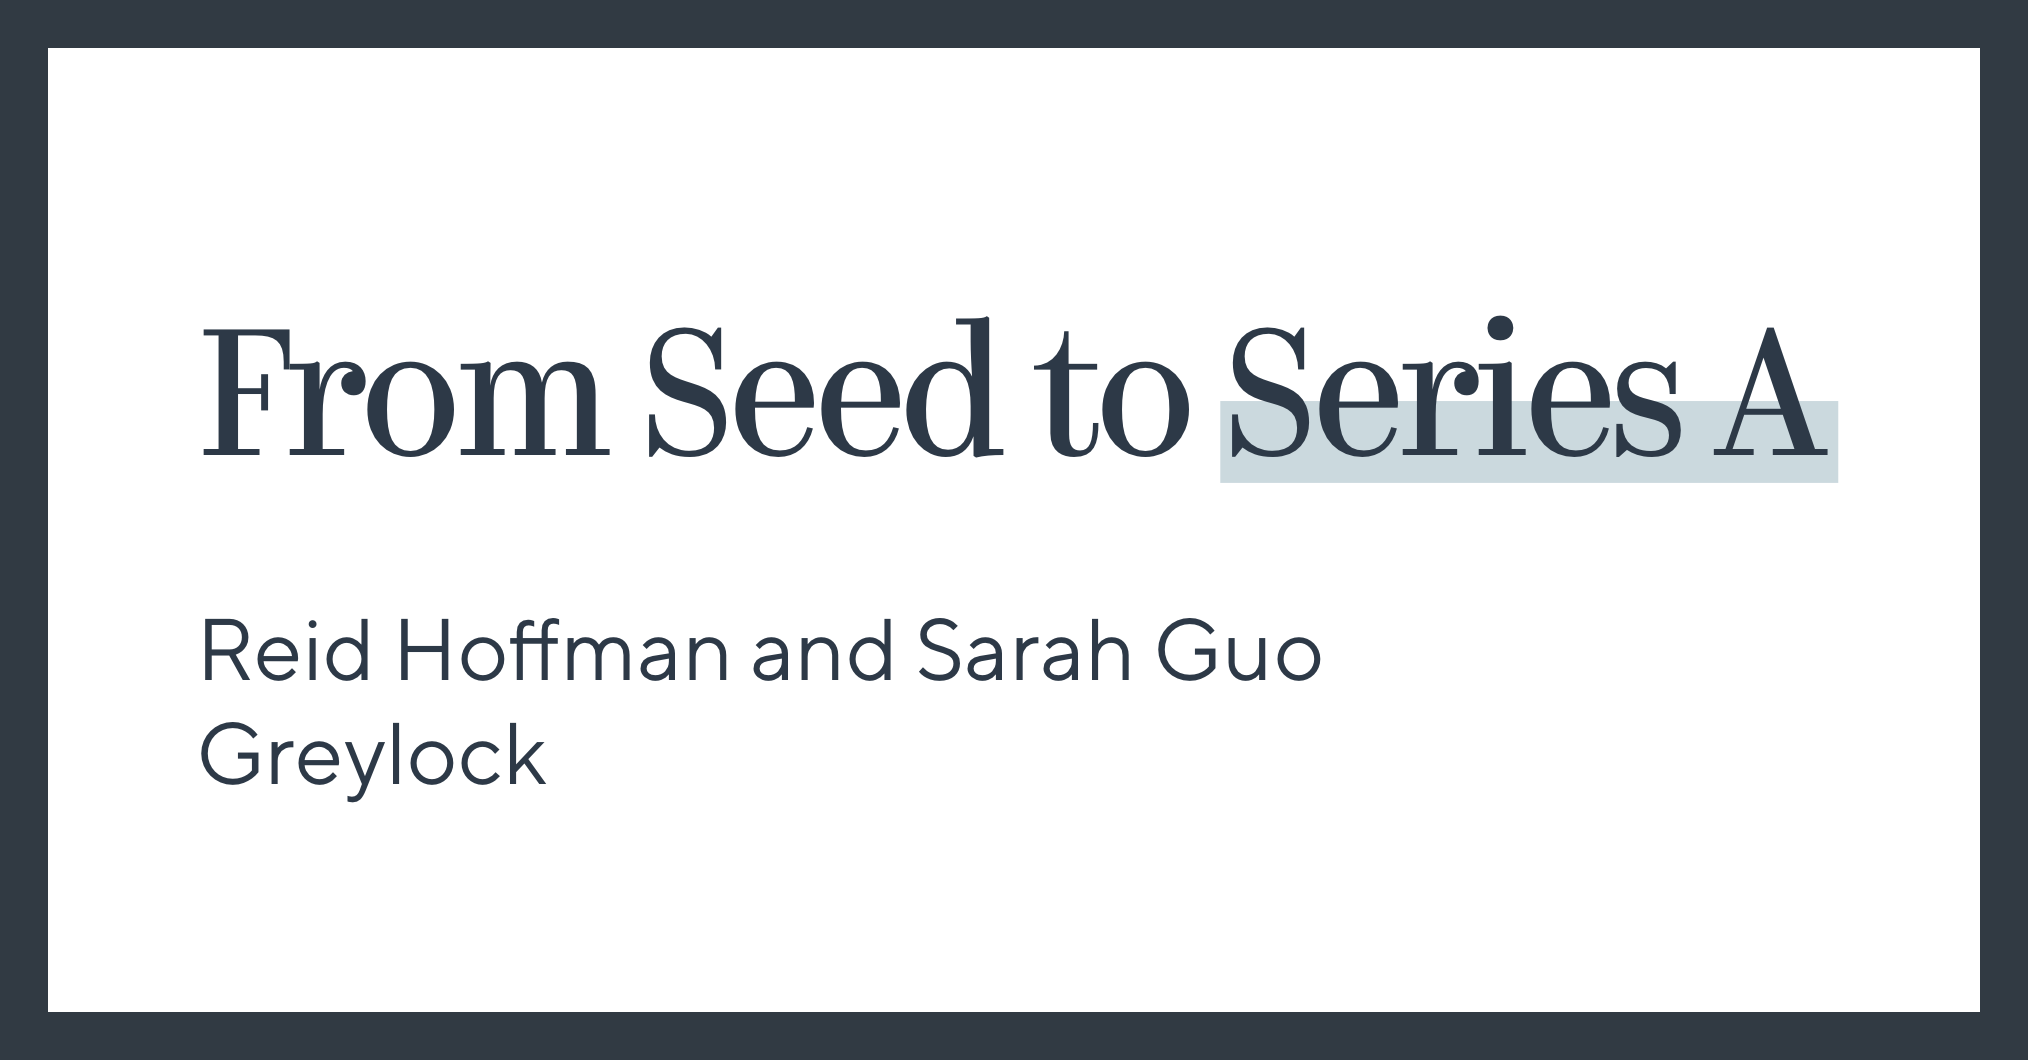 From Seed to Series A